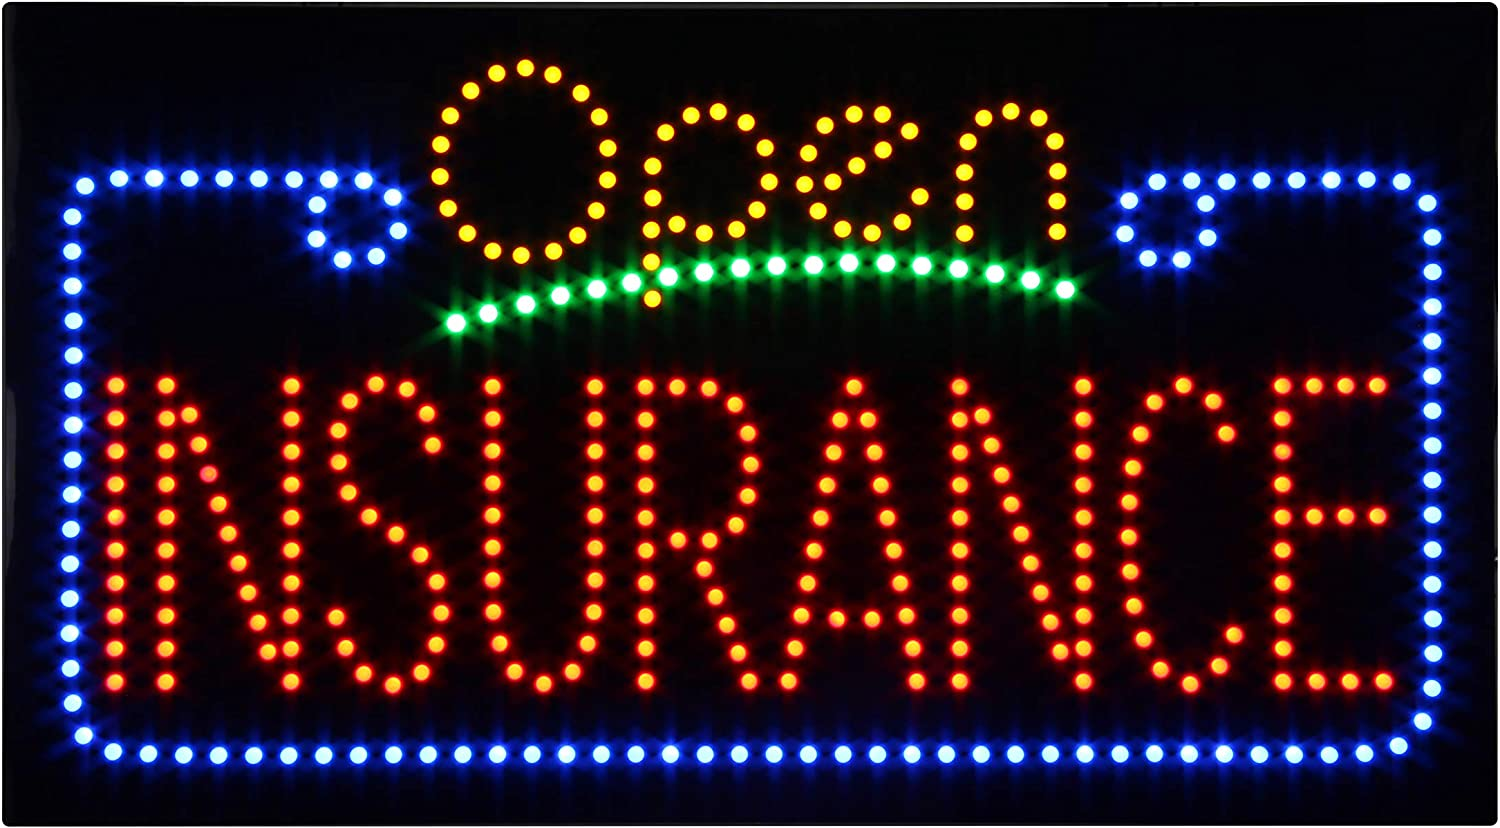 Order Here Sign for Business Super Bright Electric Advertising Display Board for Restaurant Business Shop Store Window Decor